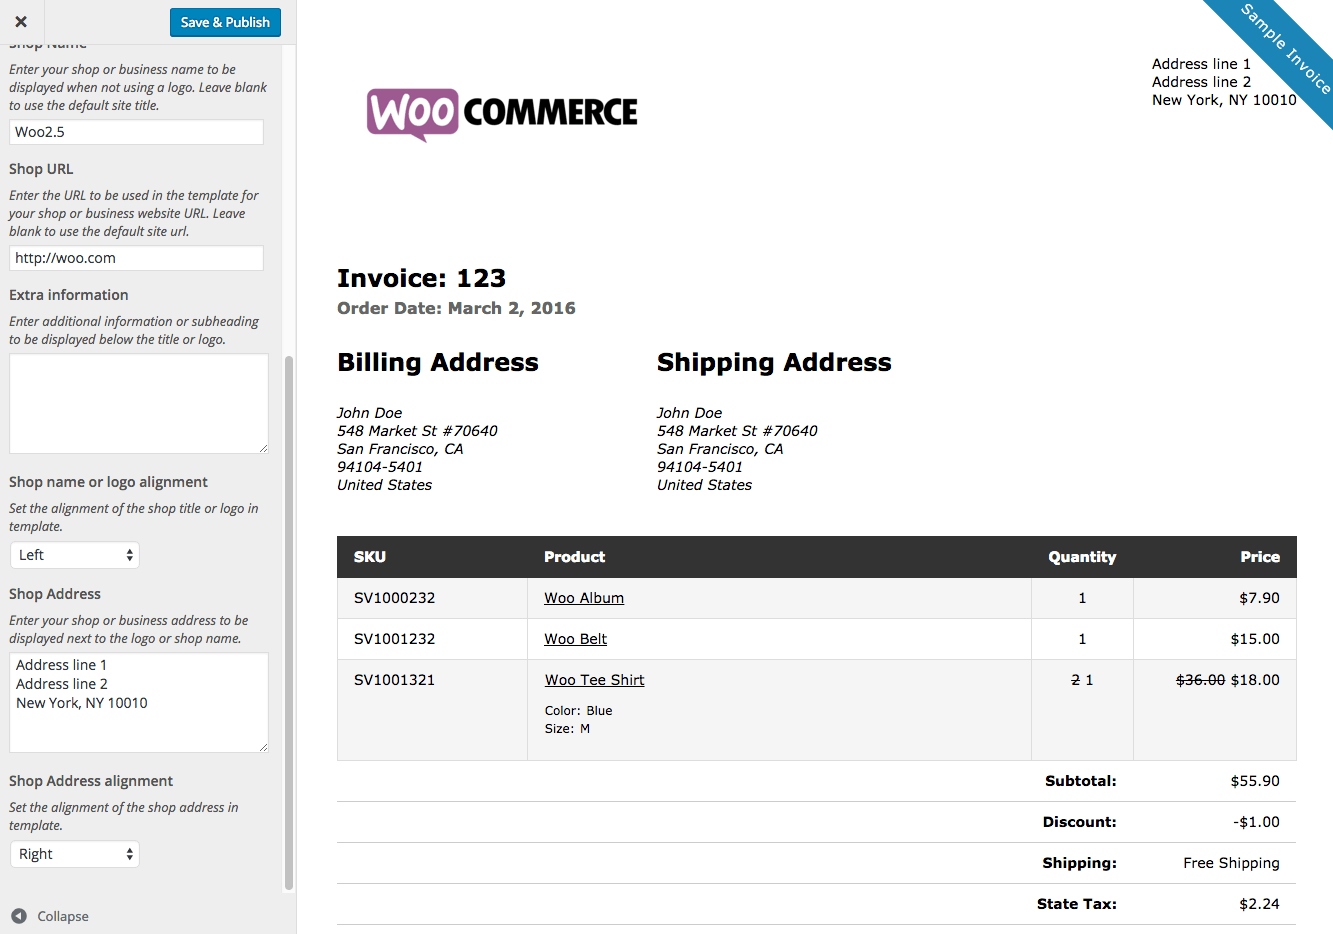 Imagerackus  Wonderful Woocommerce Print Invoices Amp Packing Lists  Woocommerce Docs With Handsome Woocommerce Print Invoices  Packing Lists Customizer With Captivating Sales Invoice Receipt Also Invoice For Website Design In Addition Invoice To Go Review And Settle Invoice As Well As Ebay Invoice Software Additionally What Does Proforma Mean On An Invoice From Docswoocommercecom With Imagerackus  Handsome Woocommerce Print Invoices Amp Packing Lists  Woocommerce Docs With Captivating Woocommerce Print Invoices  Packing Lists Customizer And Wonderful Sales Invoice Receipt Also Invoice For Website Design In Addition Invoice To Go Review From Docswoocommercecom